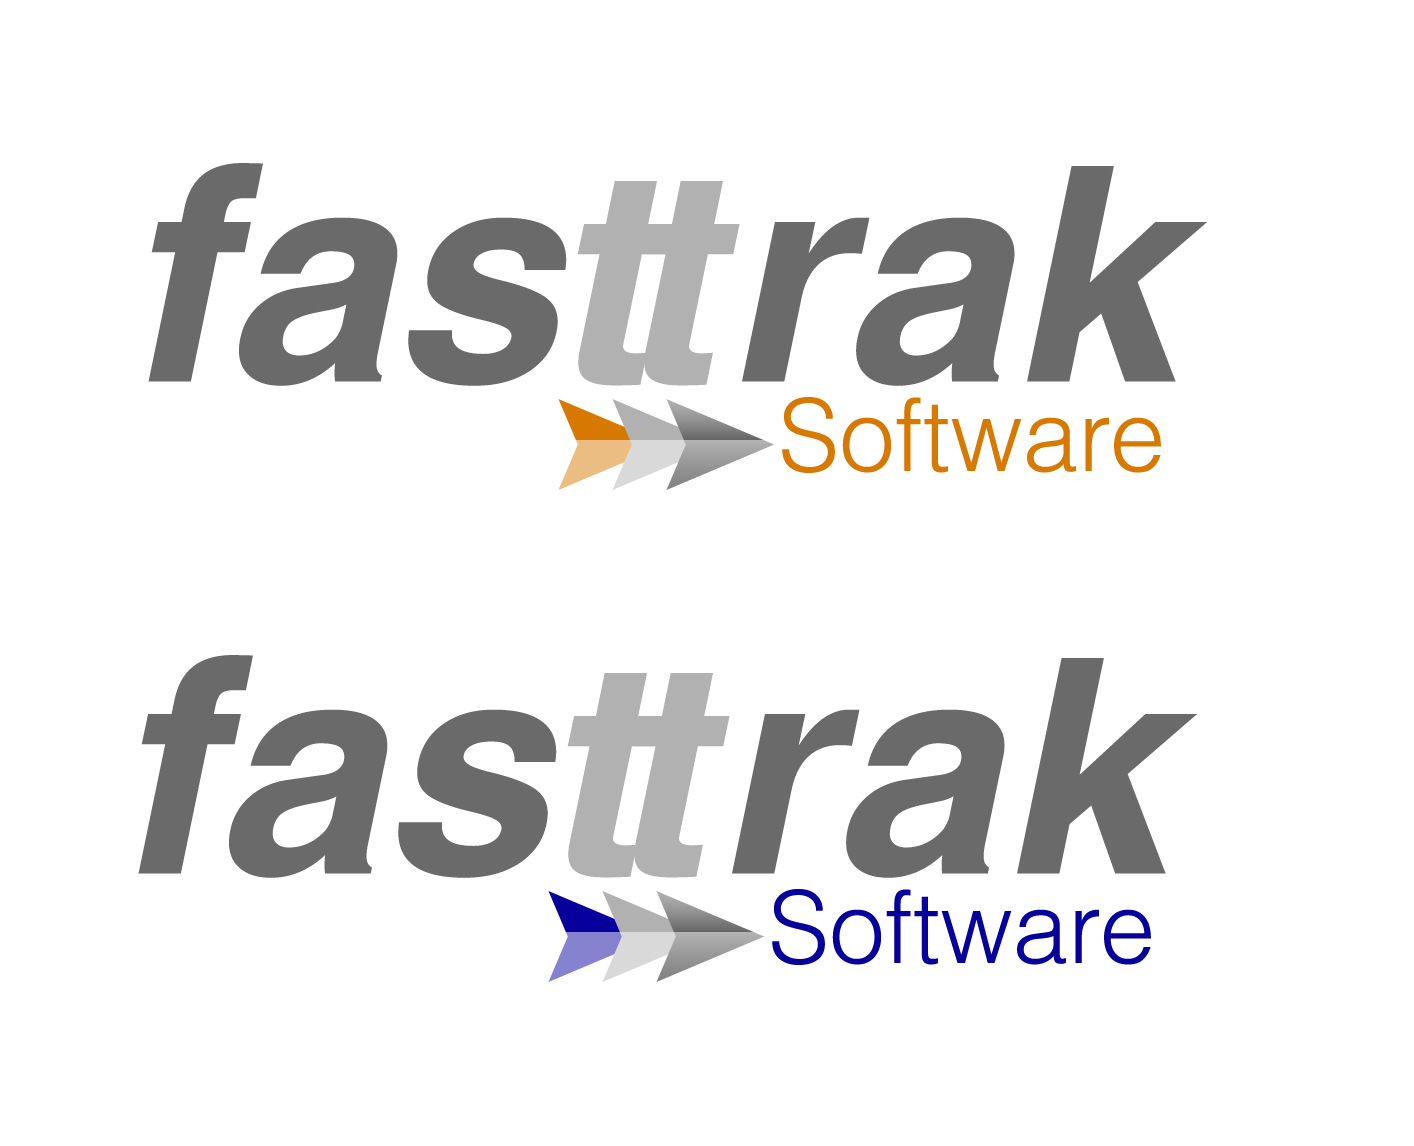 Logo Design by Lama Creative - Entry No. 65 in the Logo Design Contest Fast Trak Software Logo Design.